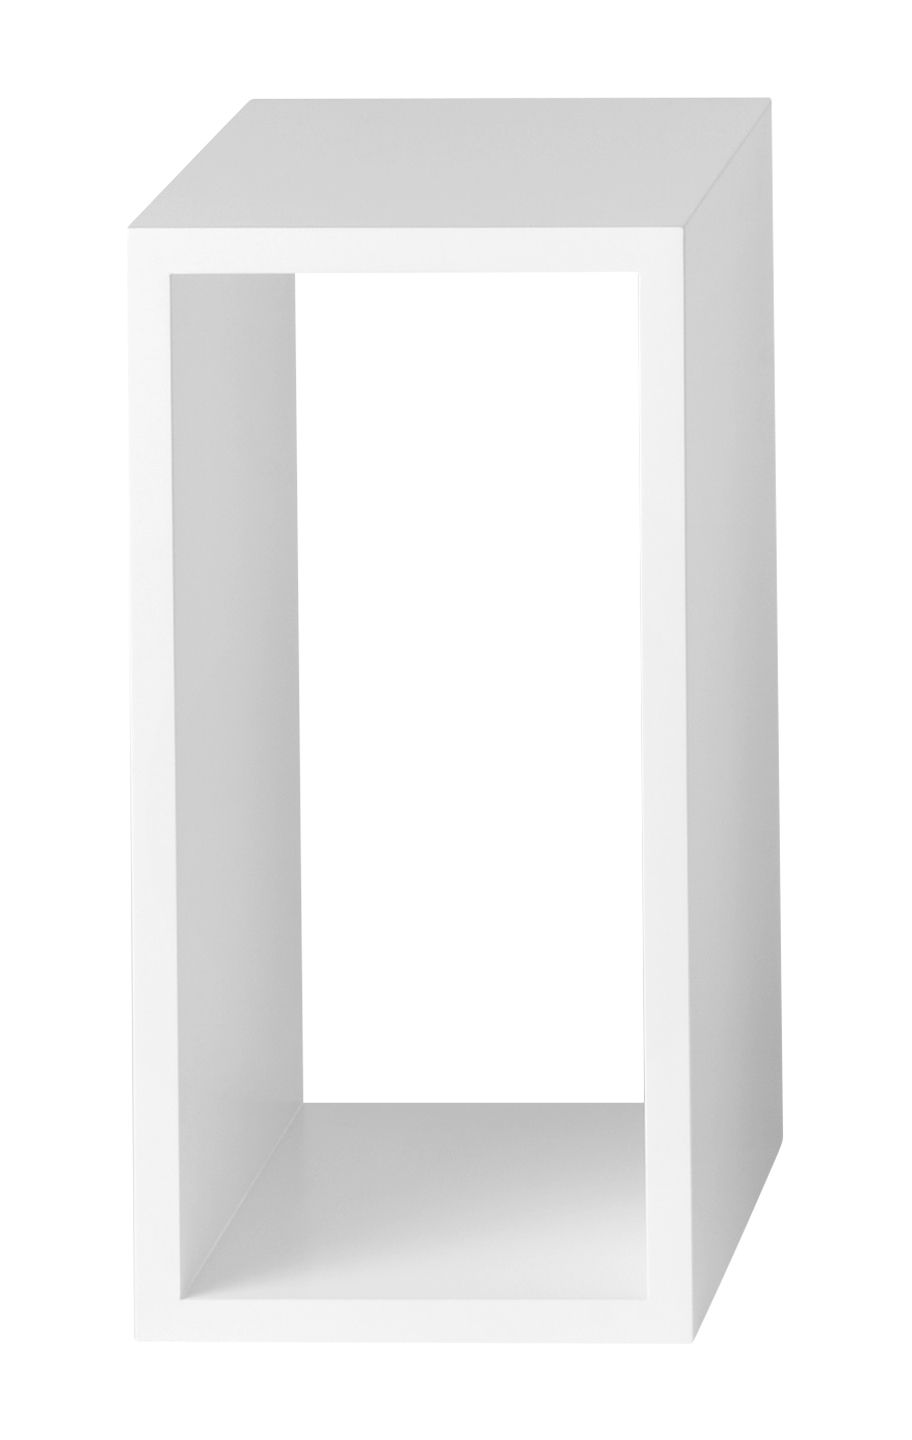 Furniture - Bookcases & Bookshelves - Stacked 2.0 Shelf - / Small rectangulaire 43x21 cm / Sans fond by Muuto - White - Painted MDF